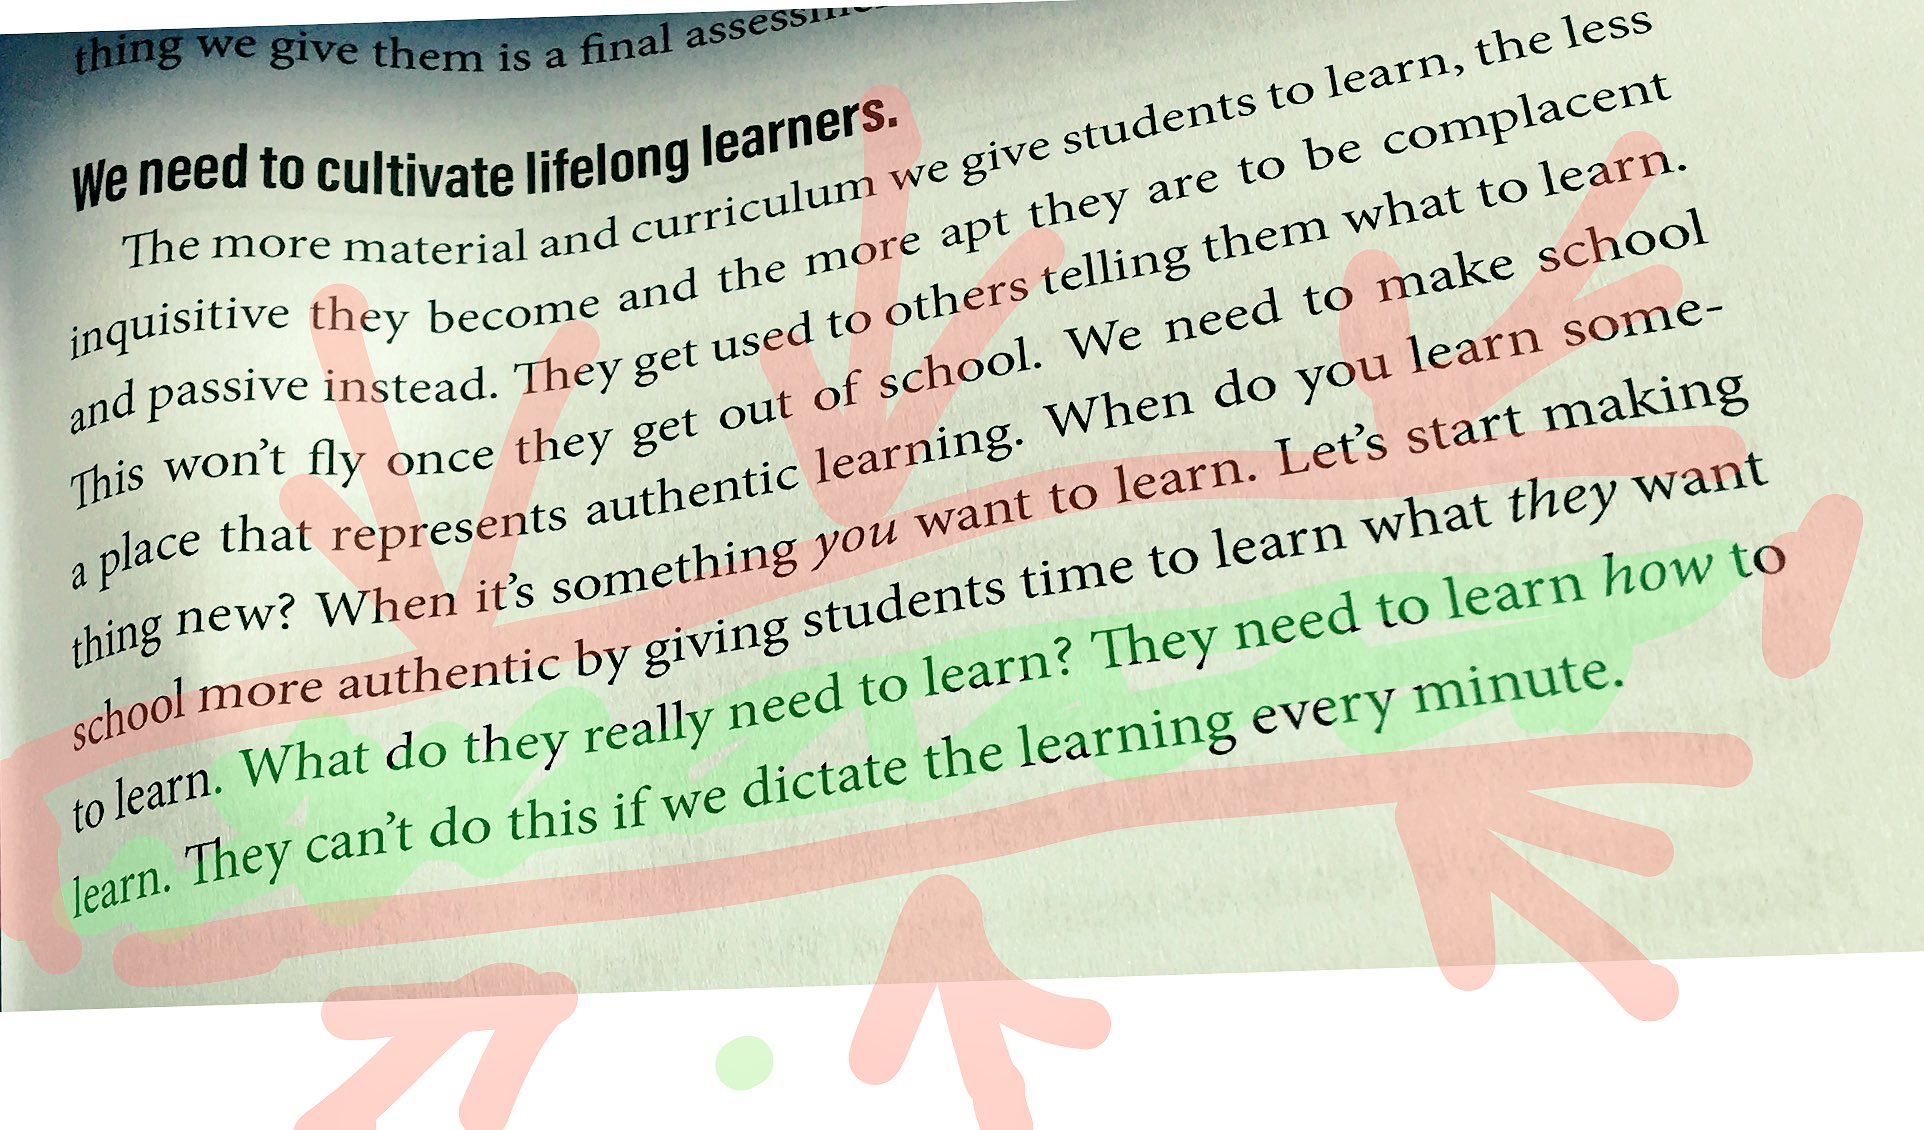 This is going to be my 2017-2018 mantra! #ShiftThis Thank you @JoyKirr https://t.co/LoiwH2VIzJ